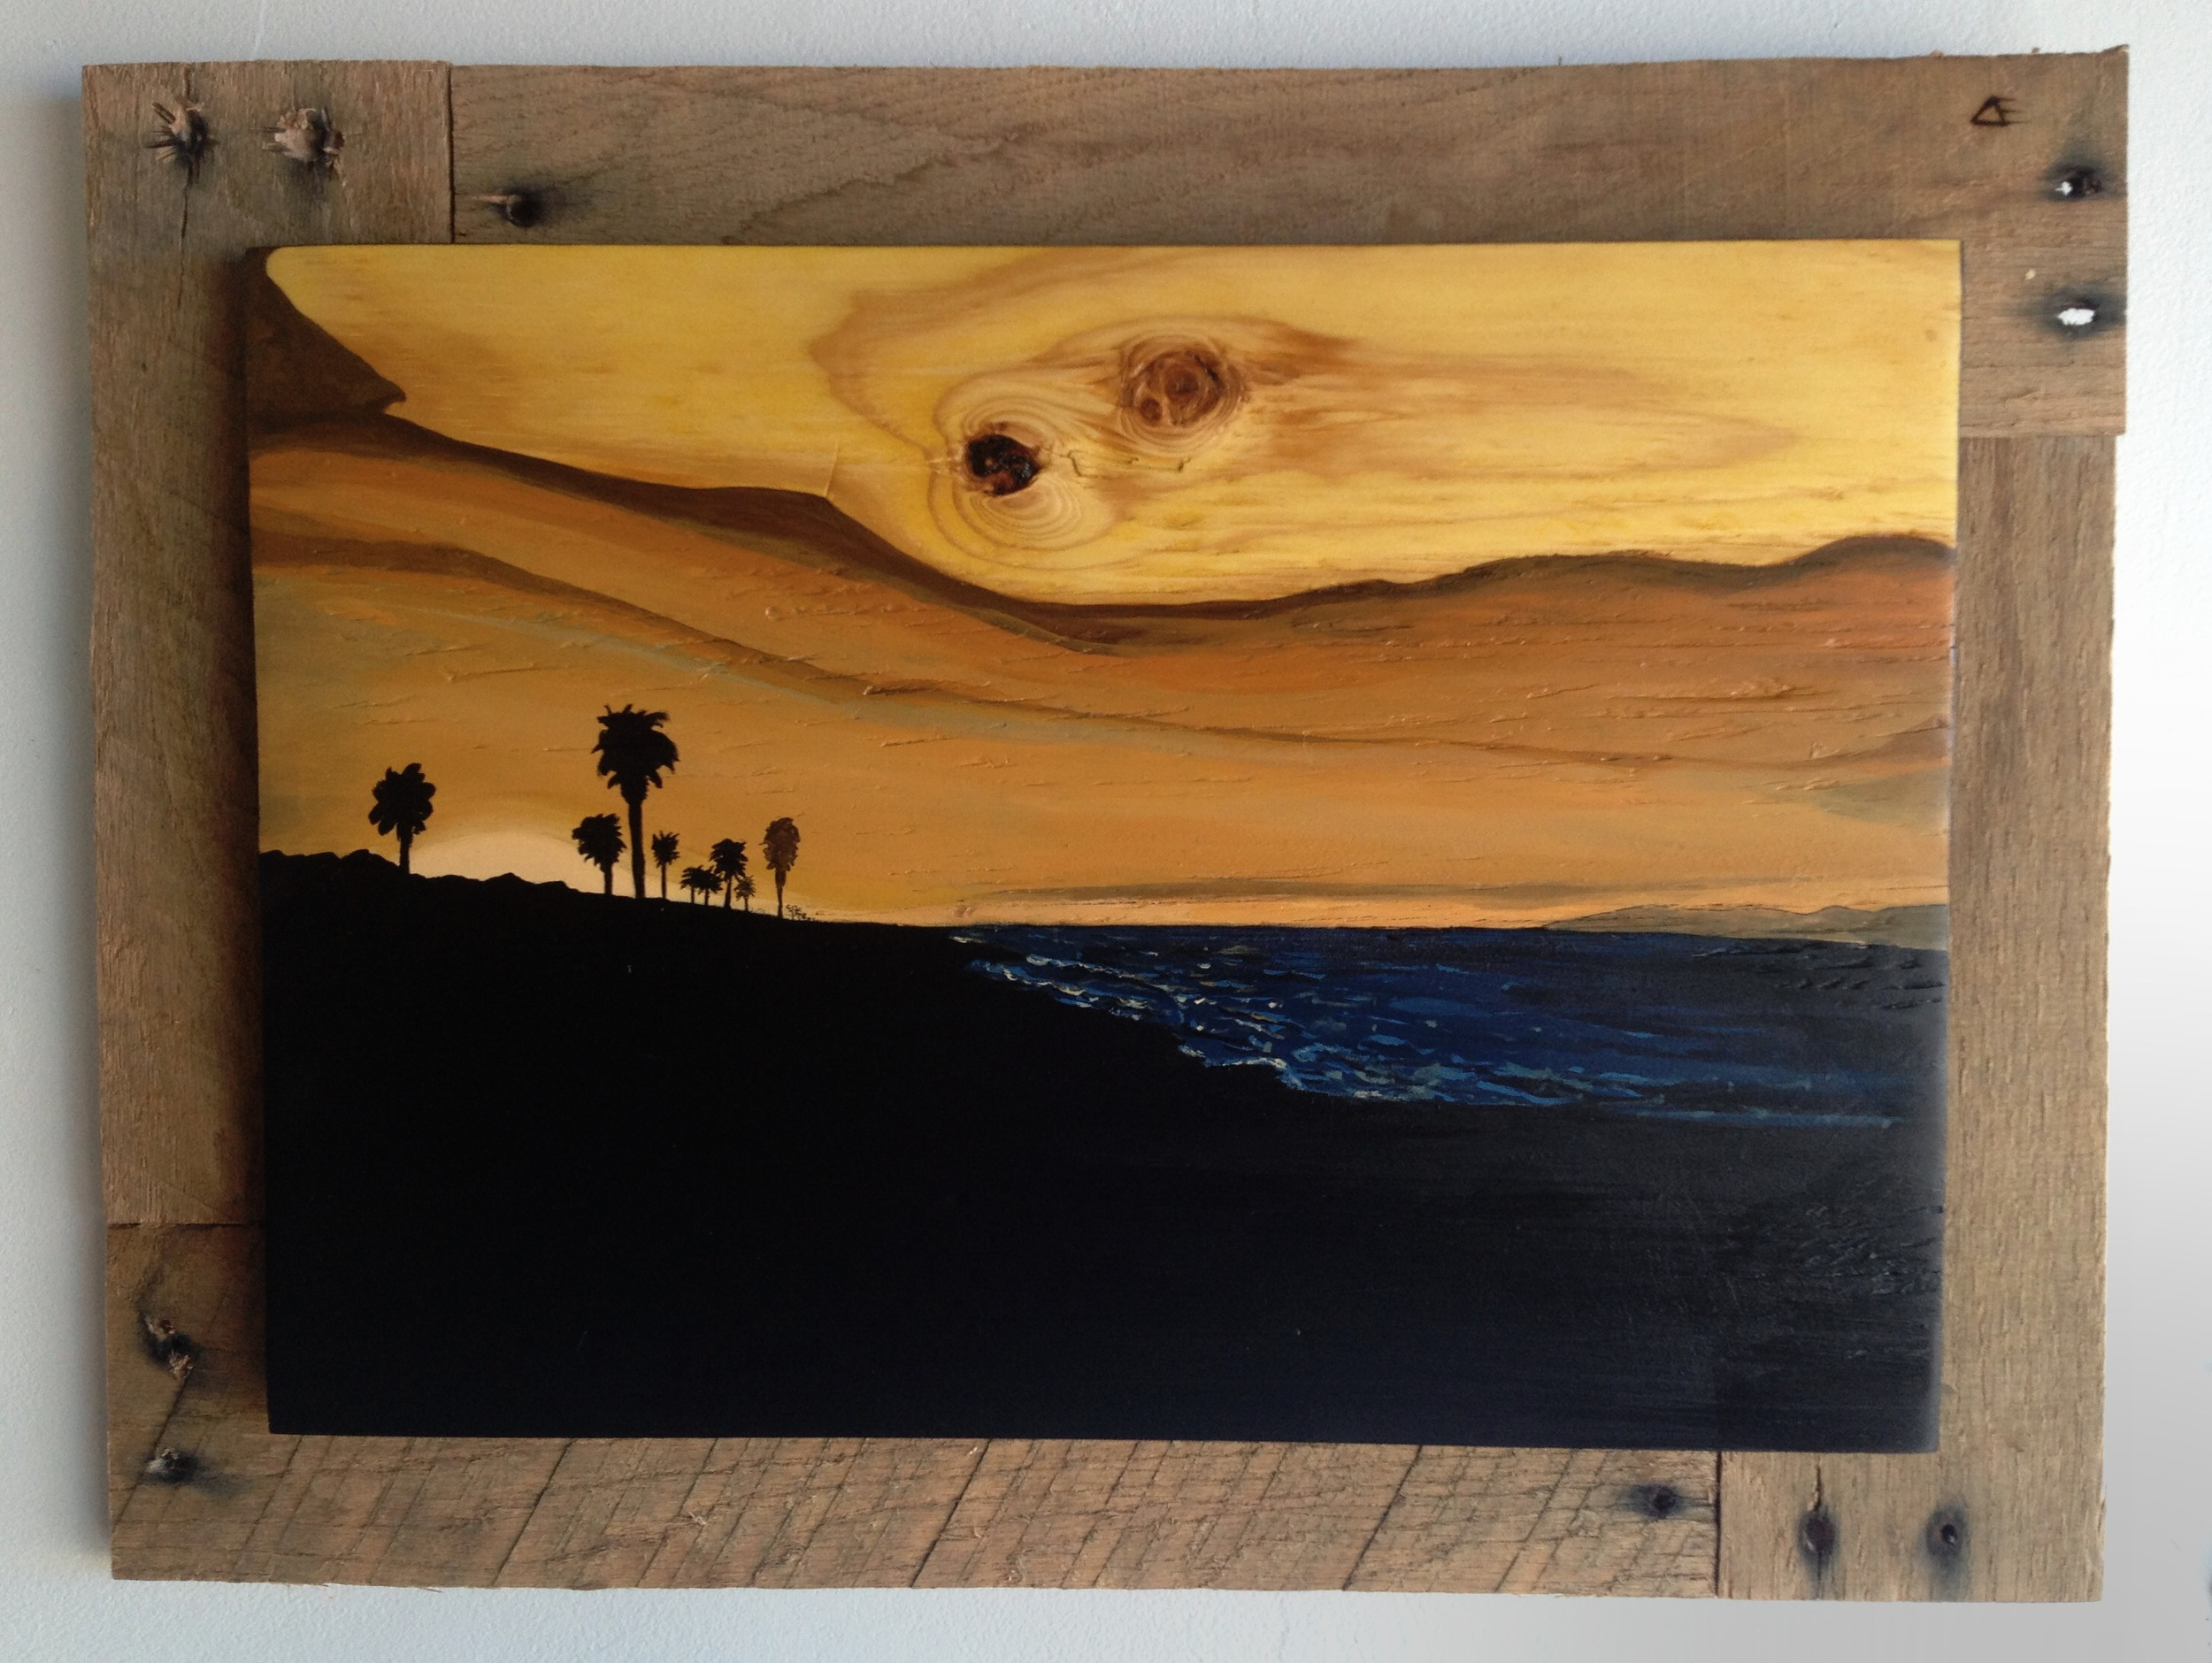 Acrylic and wood stain